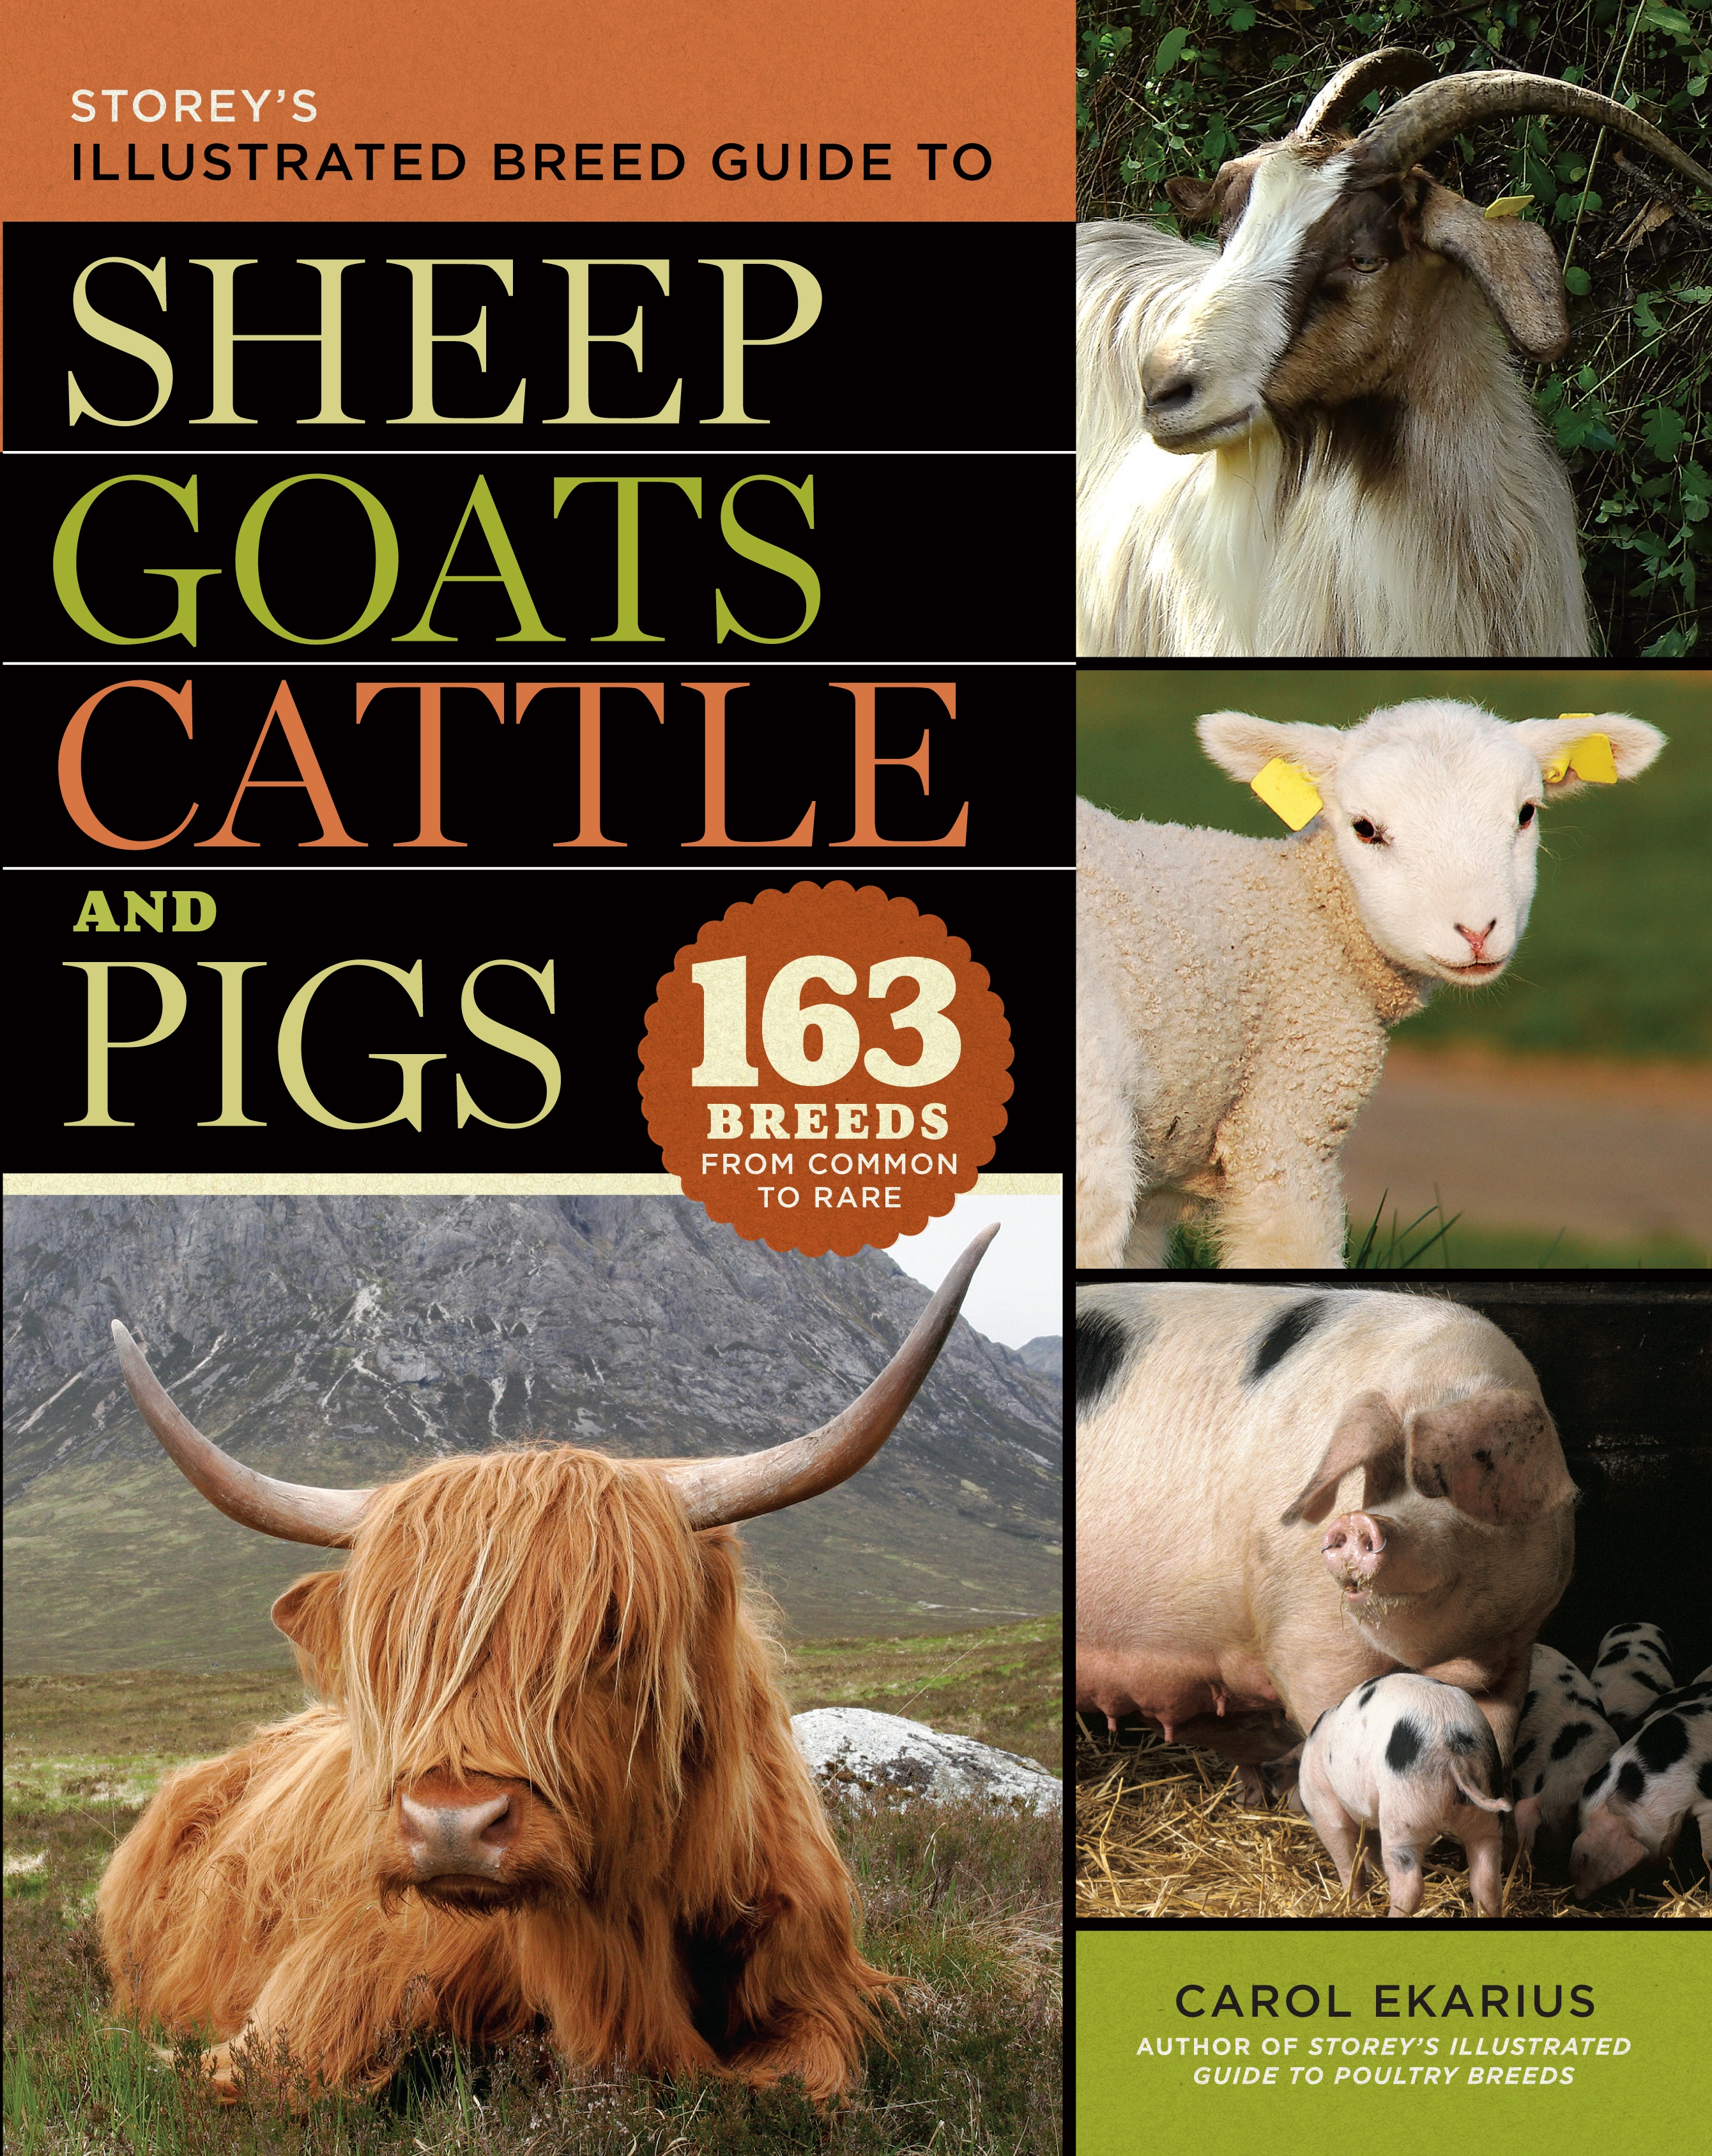 Storey's Illustrated Breed Guide to Sheep, Goats, Cattle and Pigs 163 Breeds from Common to Rare - Carol Ekarius